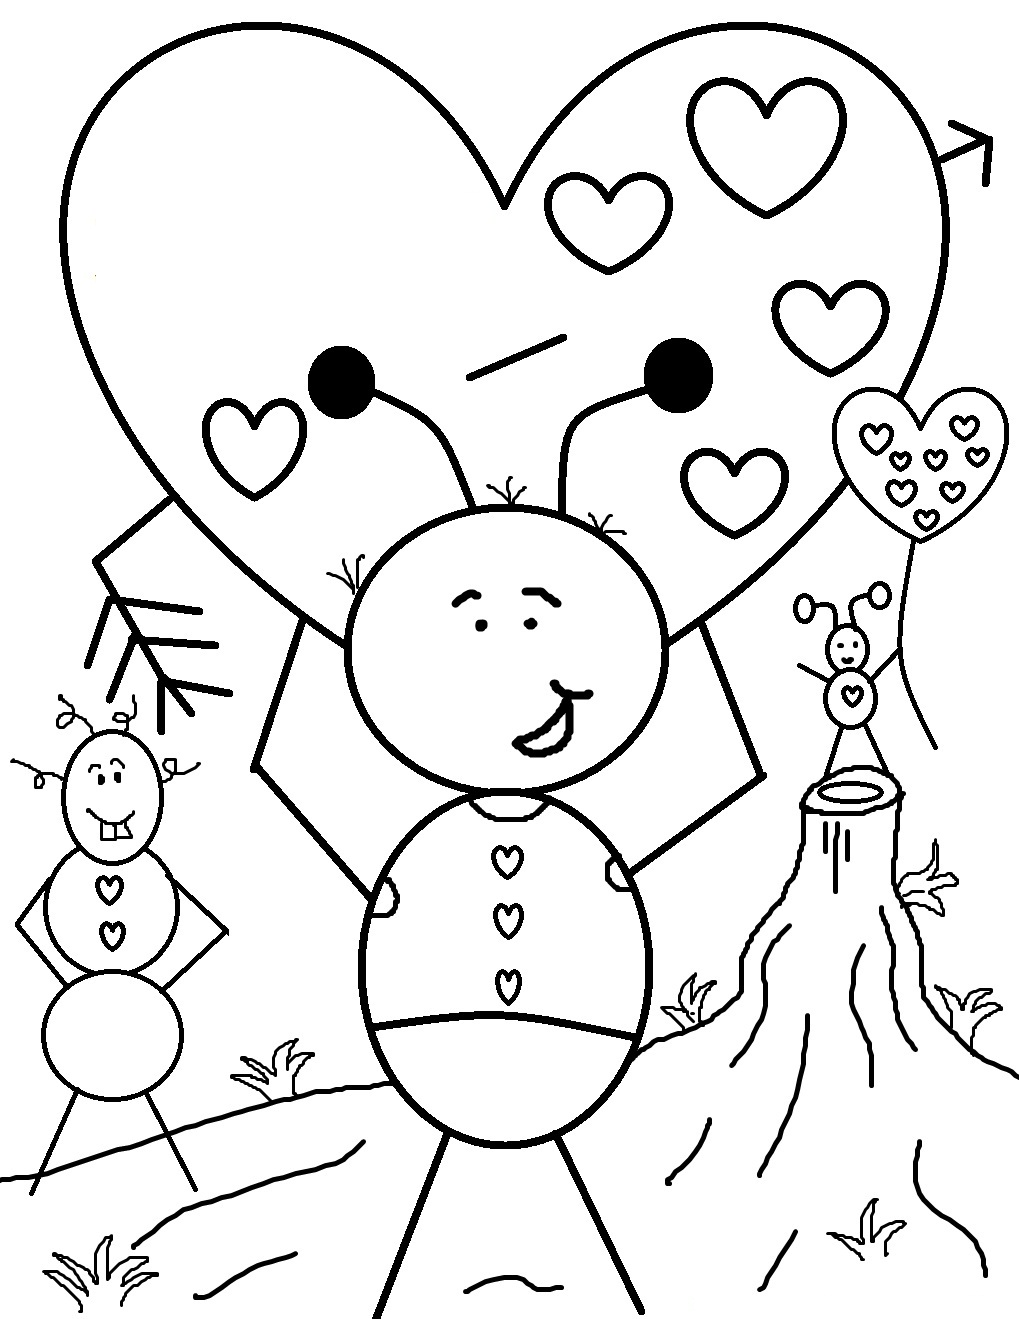 valentines coloring pages printable free printable valentine coloring pages for kids coloring valentines pages printable